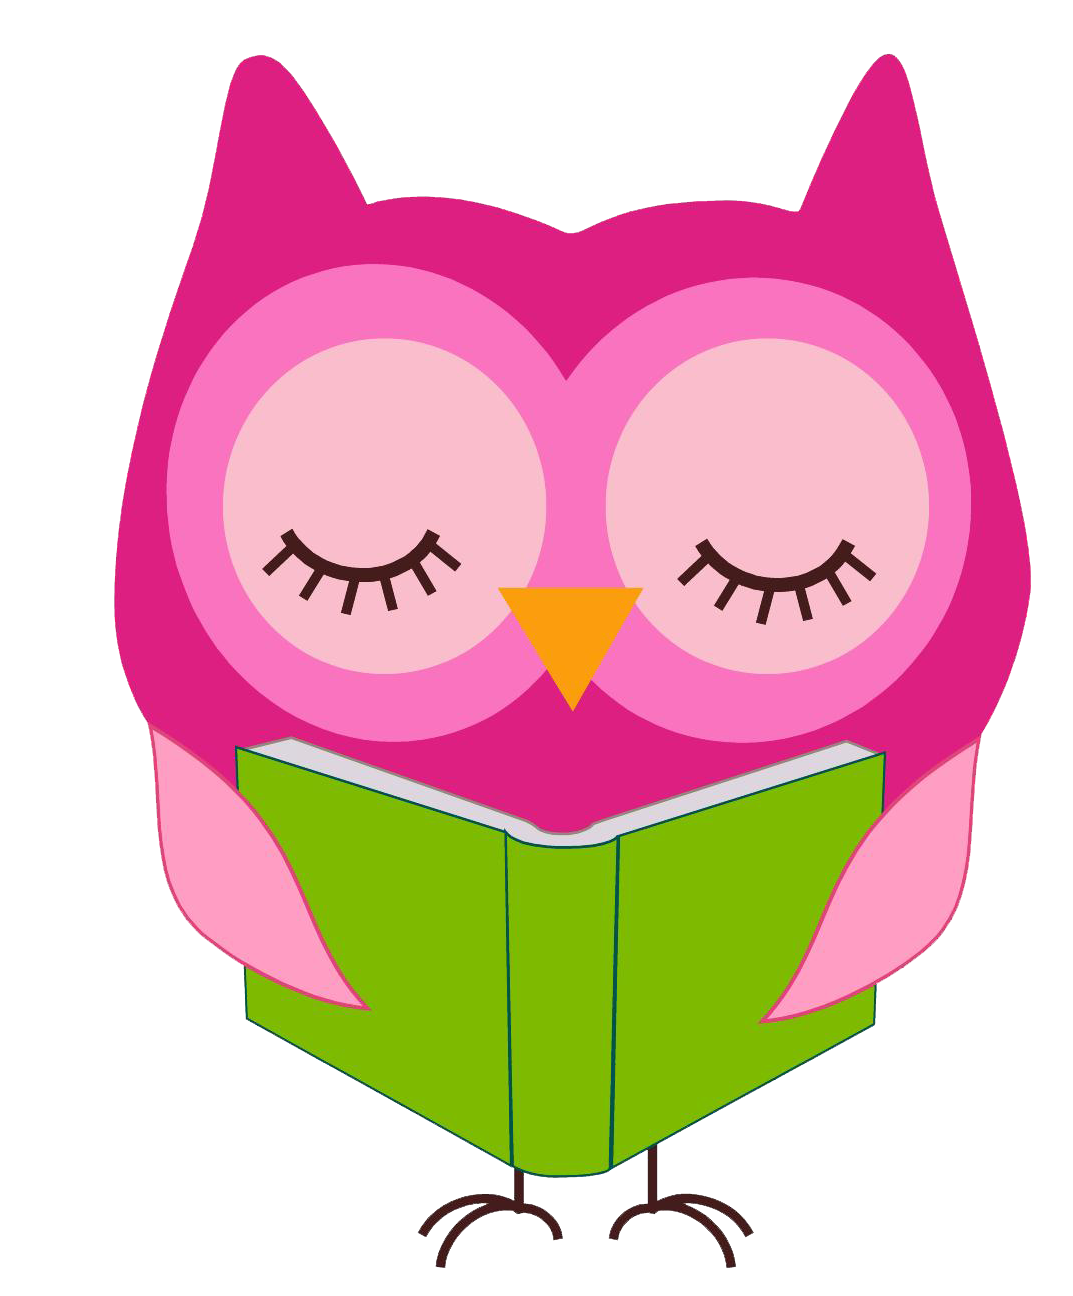 Book clipart free clipart freeuse Owl with books clipart - ClipartFest clipart freeuse